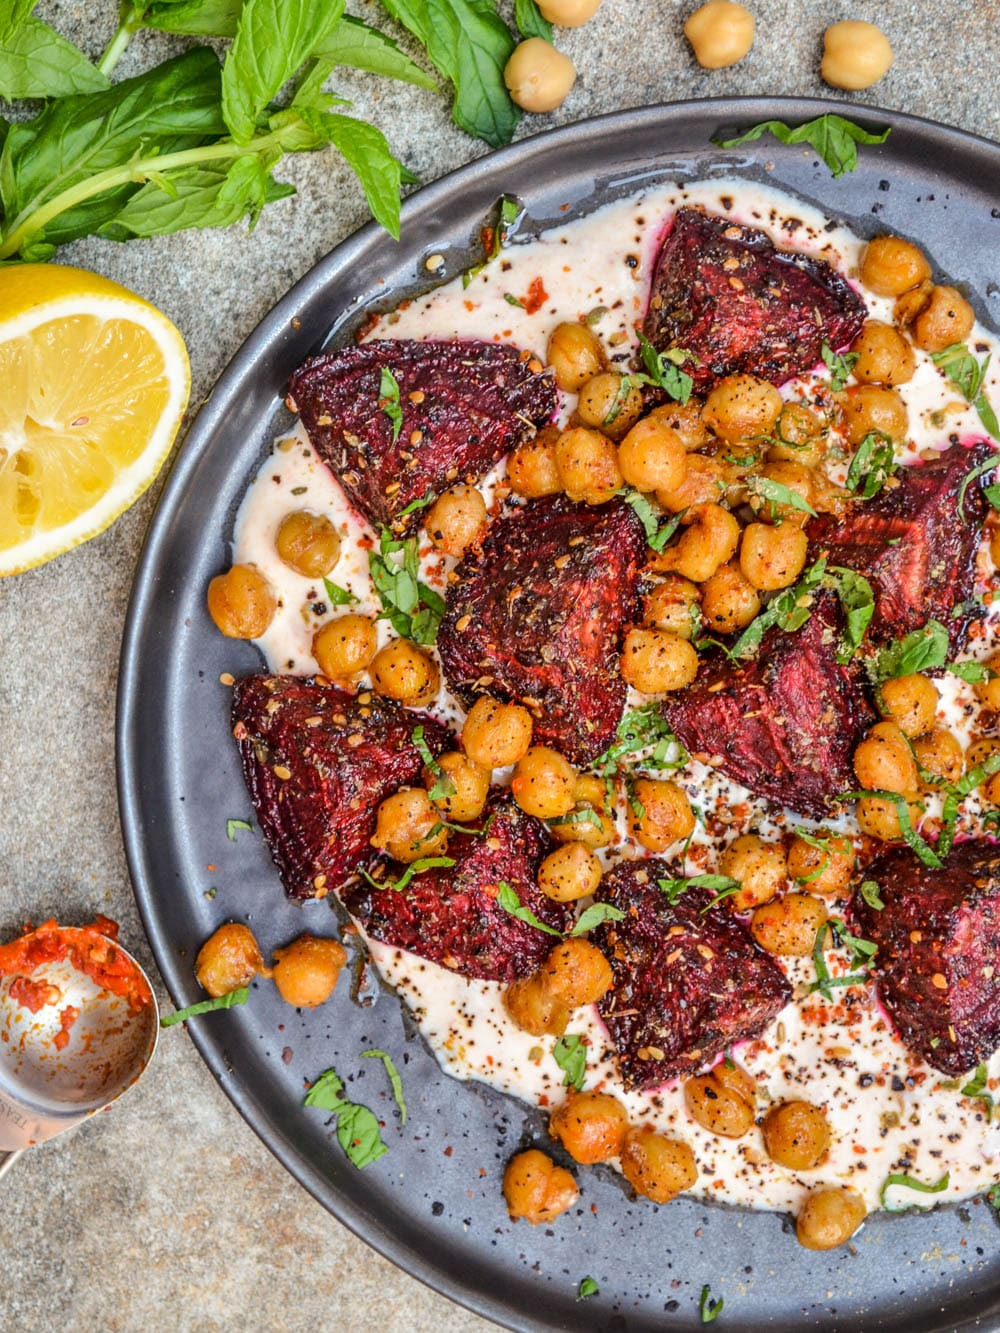 Spiced beetroot & chickpeas with harissa yoghurt / A kitchen in Istanbul